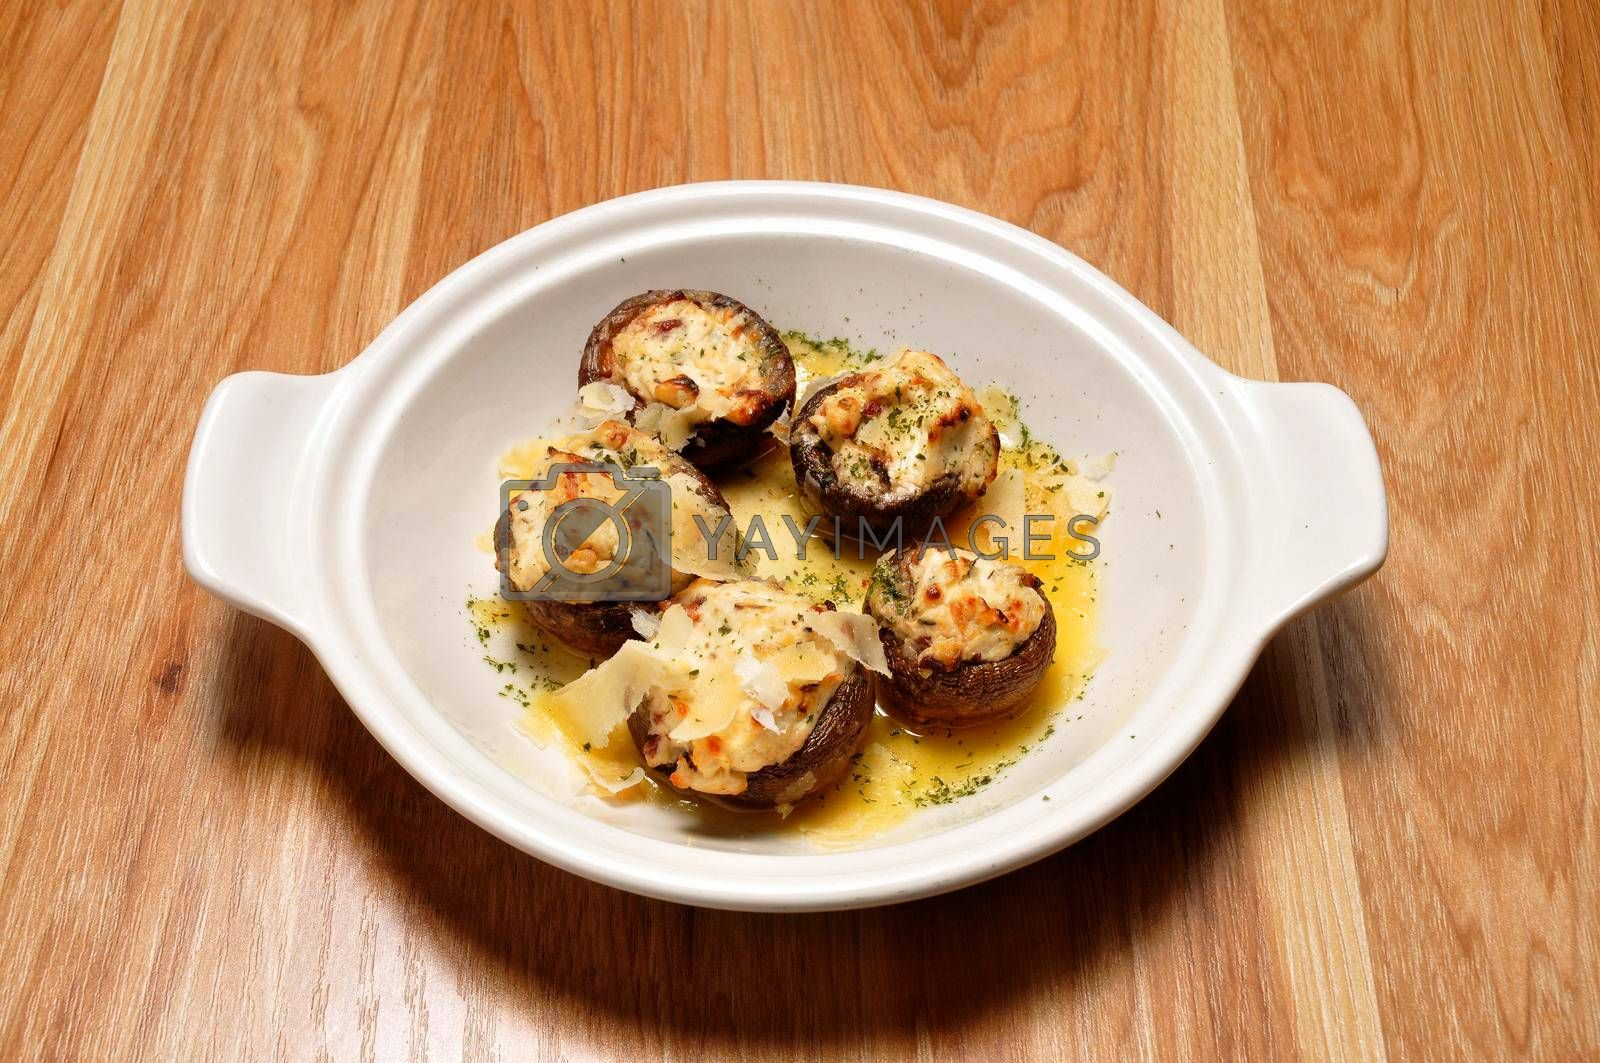 Delicious cuisine known best as stuffed mushrooms